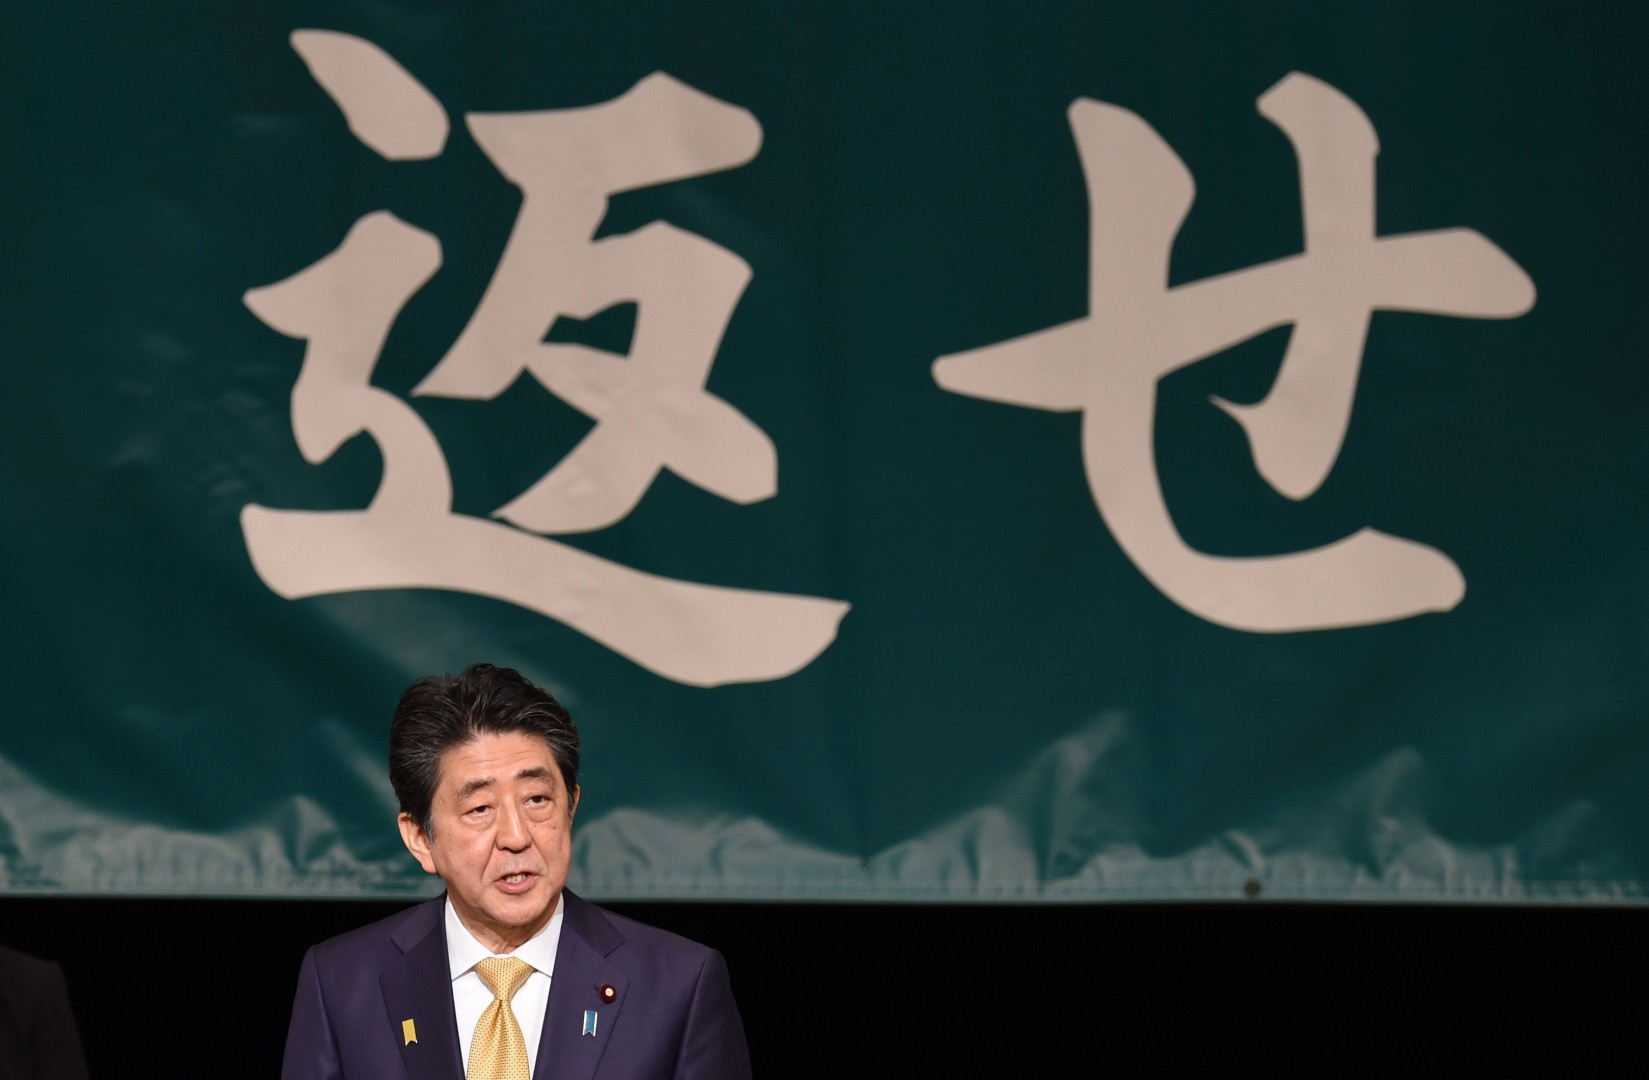 Japan's Prime Minister Shinzo Abe delivers a speech to demand the return of the Northern Territories, a group of islands held by Russia, at a national rally in Tokyo on February 7, 2019. - Called the Kurils by Russia and the Northern Territories by Japan, the string of volcanic islands are at the heart of a feud between the two countries has prevented Russia and Japan from signing a formal World War II peace treaty. (Photo by Kazuhiro NOGI / AFP)